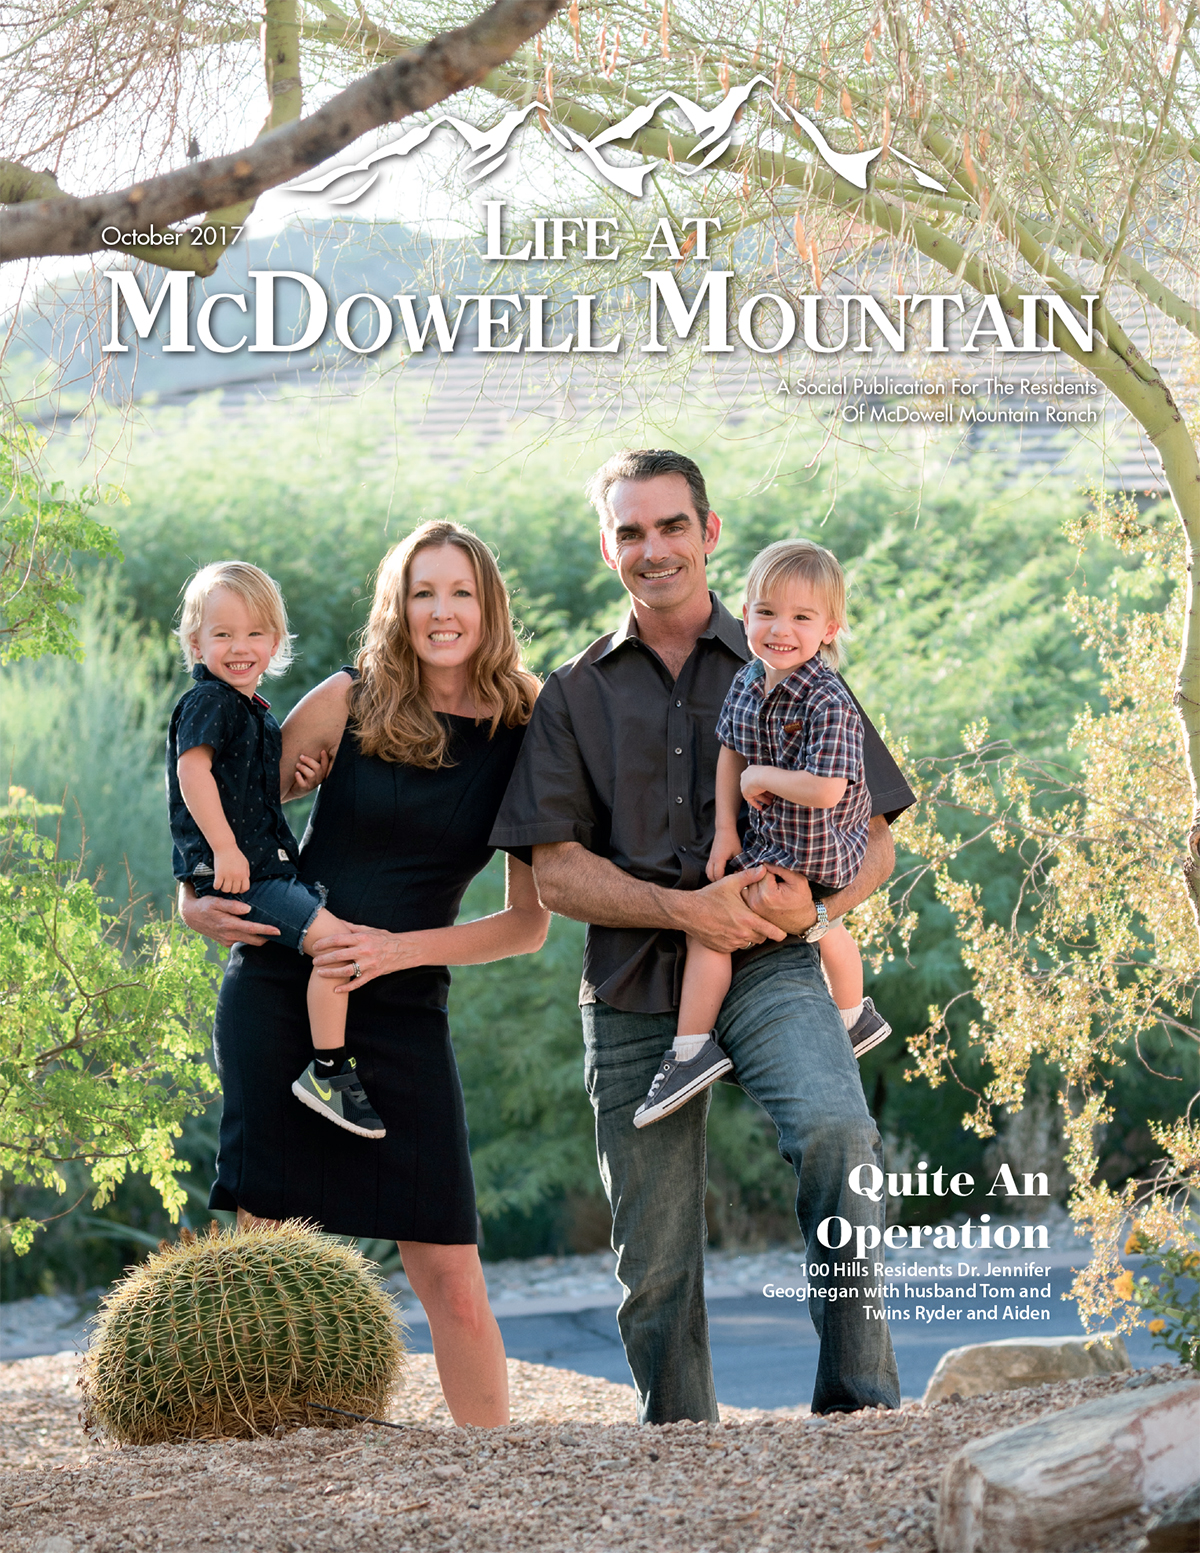 October 2017 – Life at McDowell Mountain – Quite An Operation